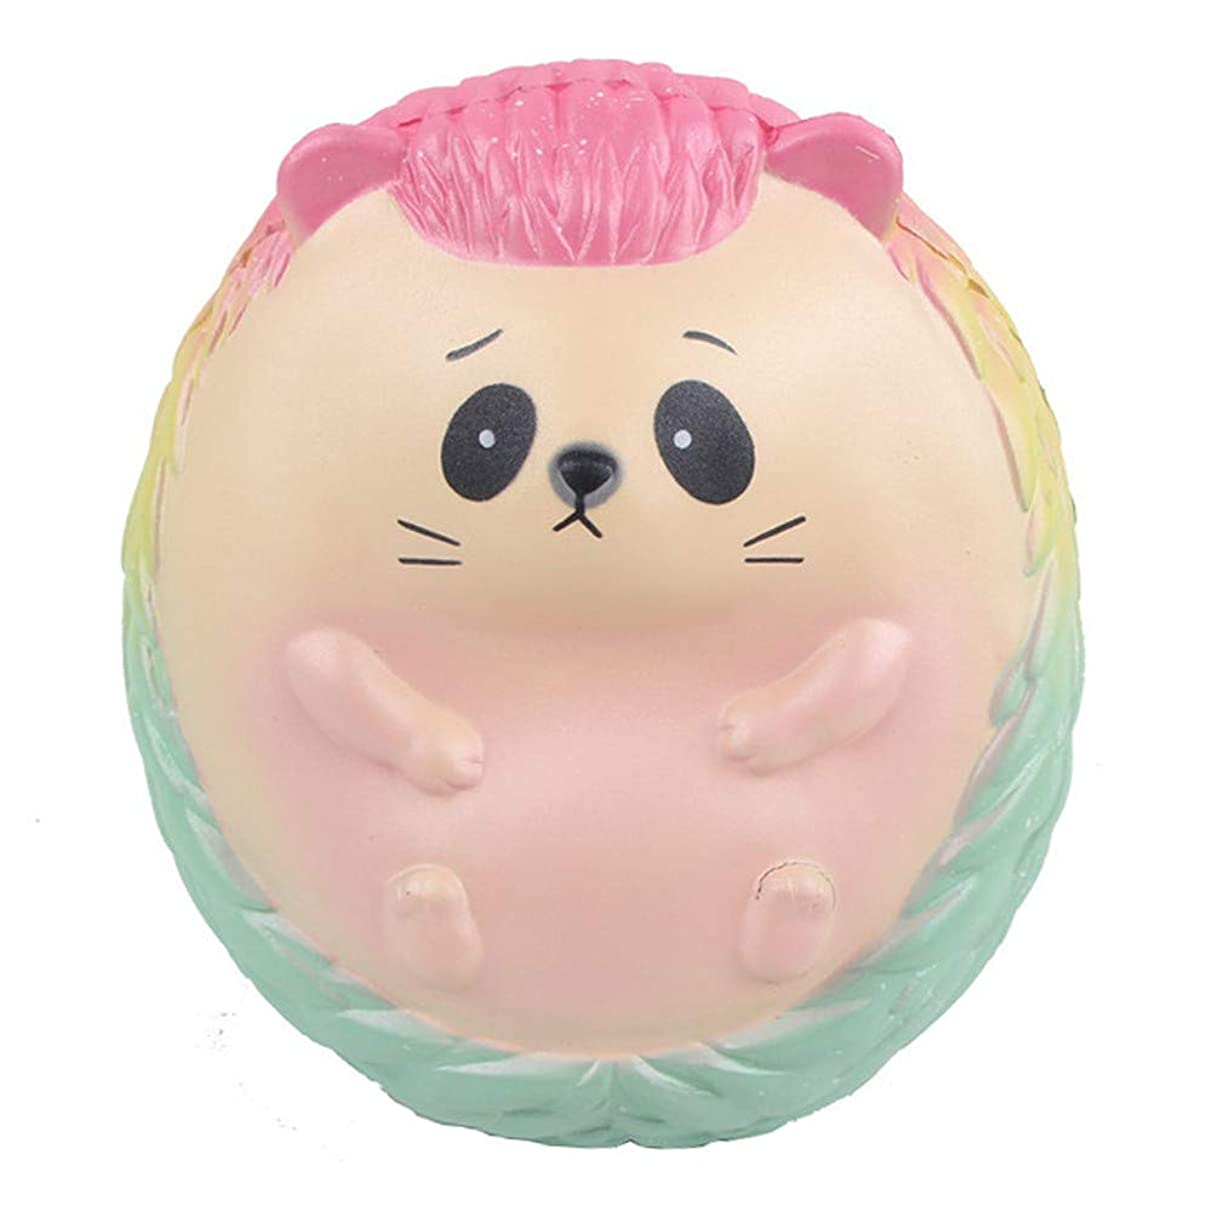 Livoty Squishies Jumbo Super Giant Galaxy Hedgehog Toys Soft Slow Rising Squeeze Stress Relieve Toy